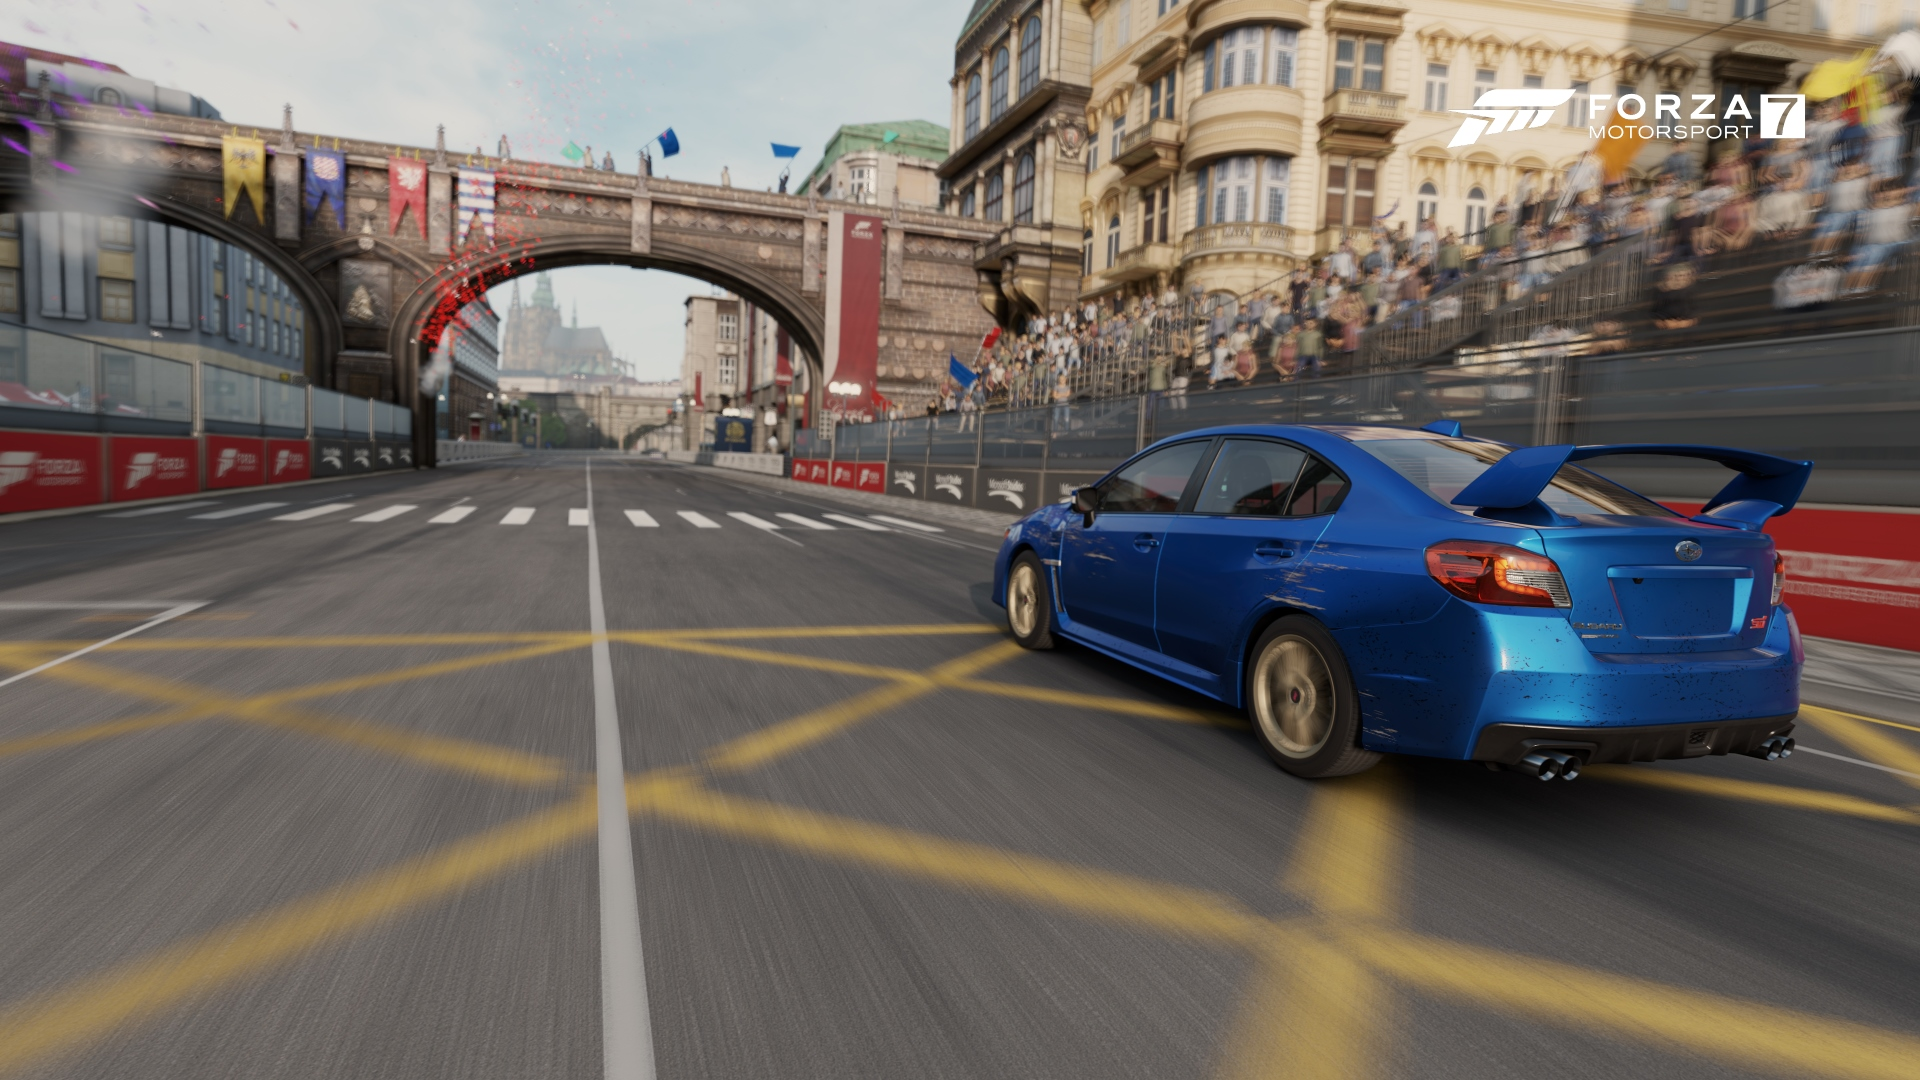 Forza Motorsport 7 now available for Xbox and Windows